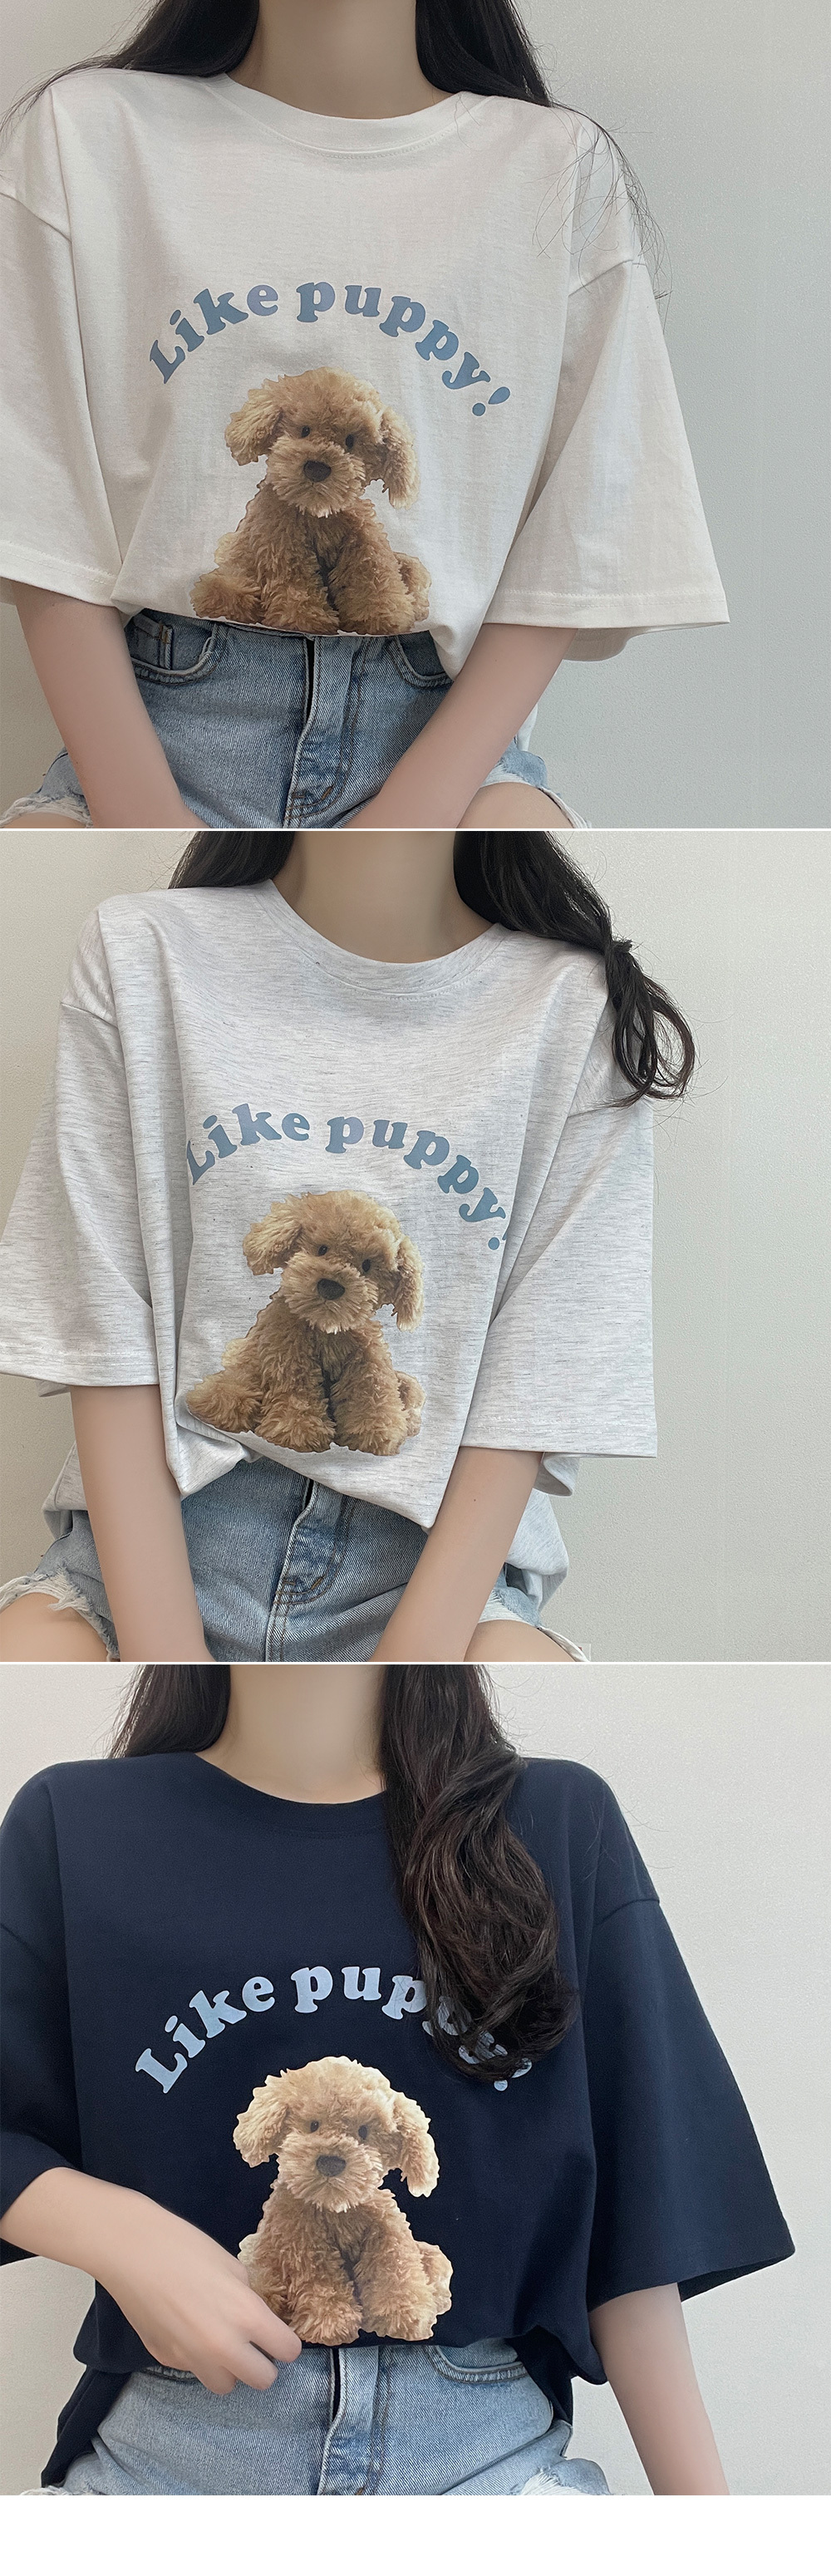 Puppy, over-fit short-sleeved T-shirt